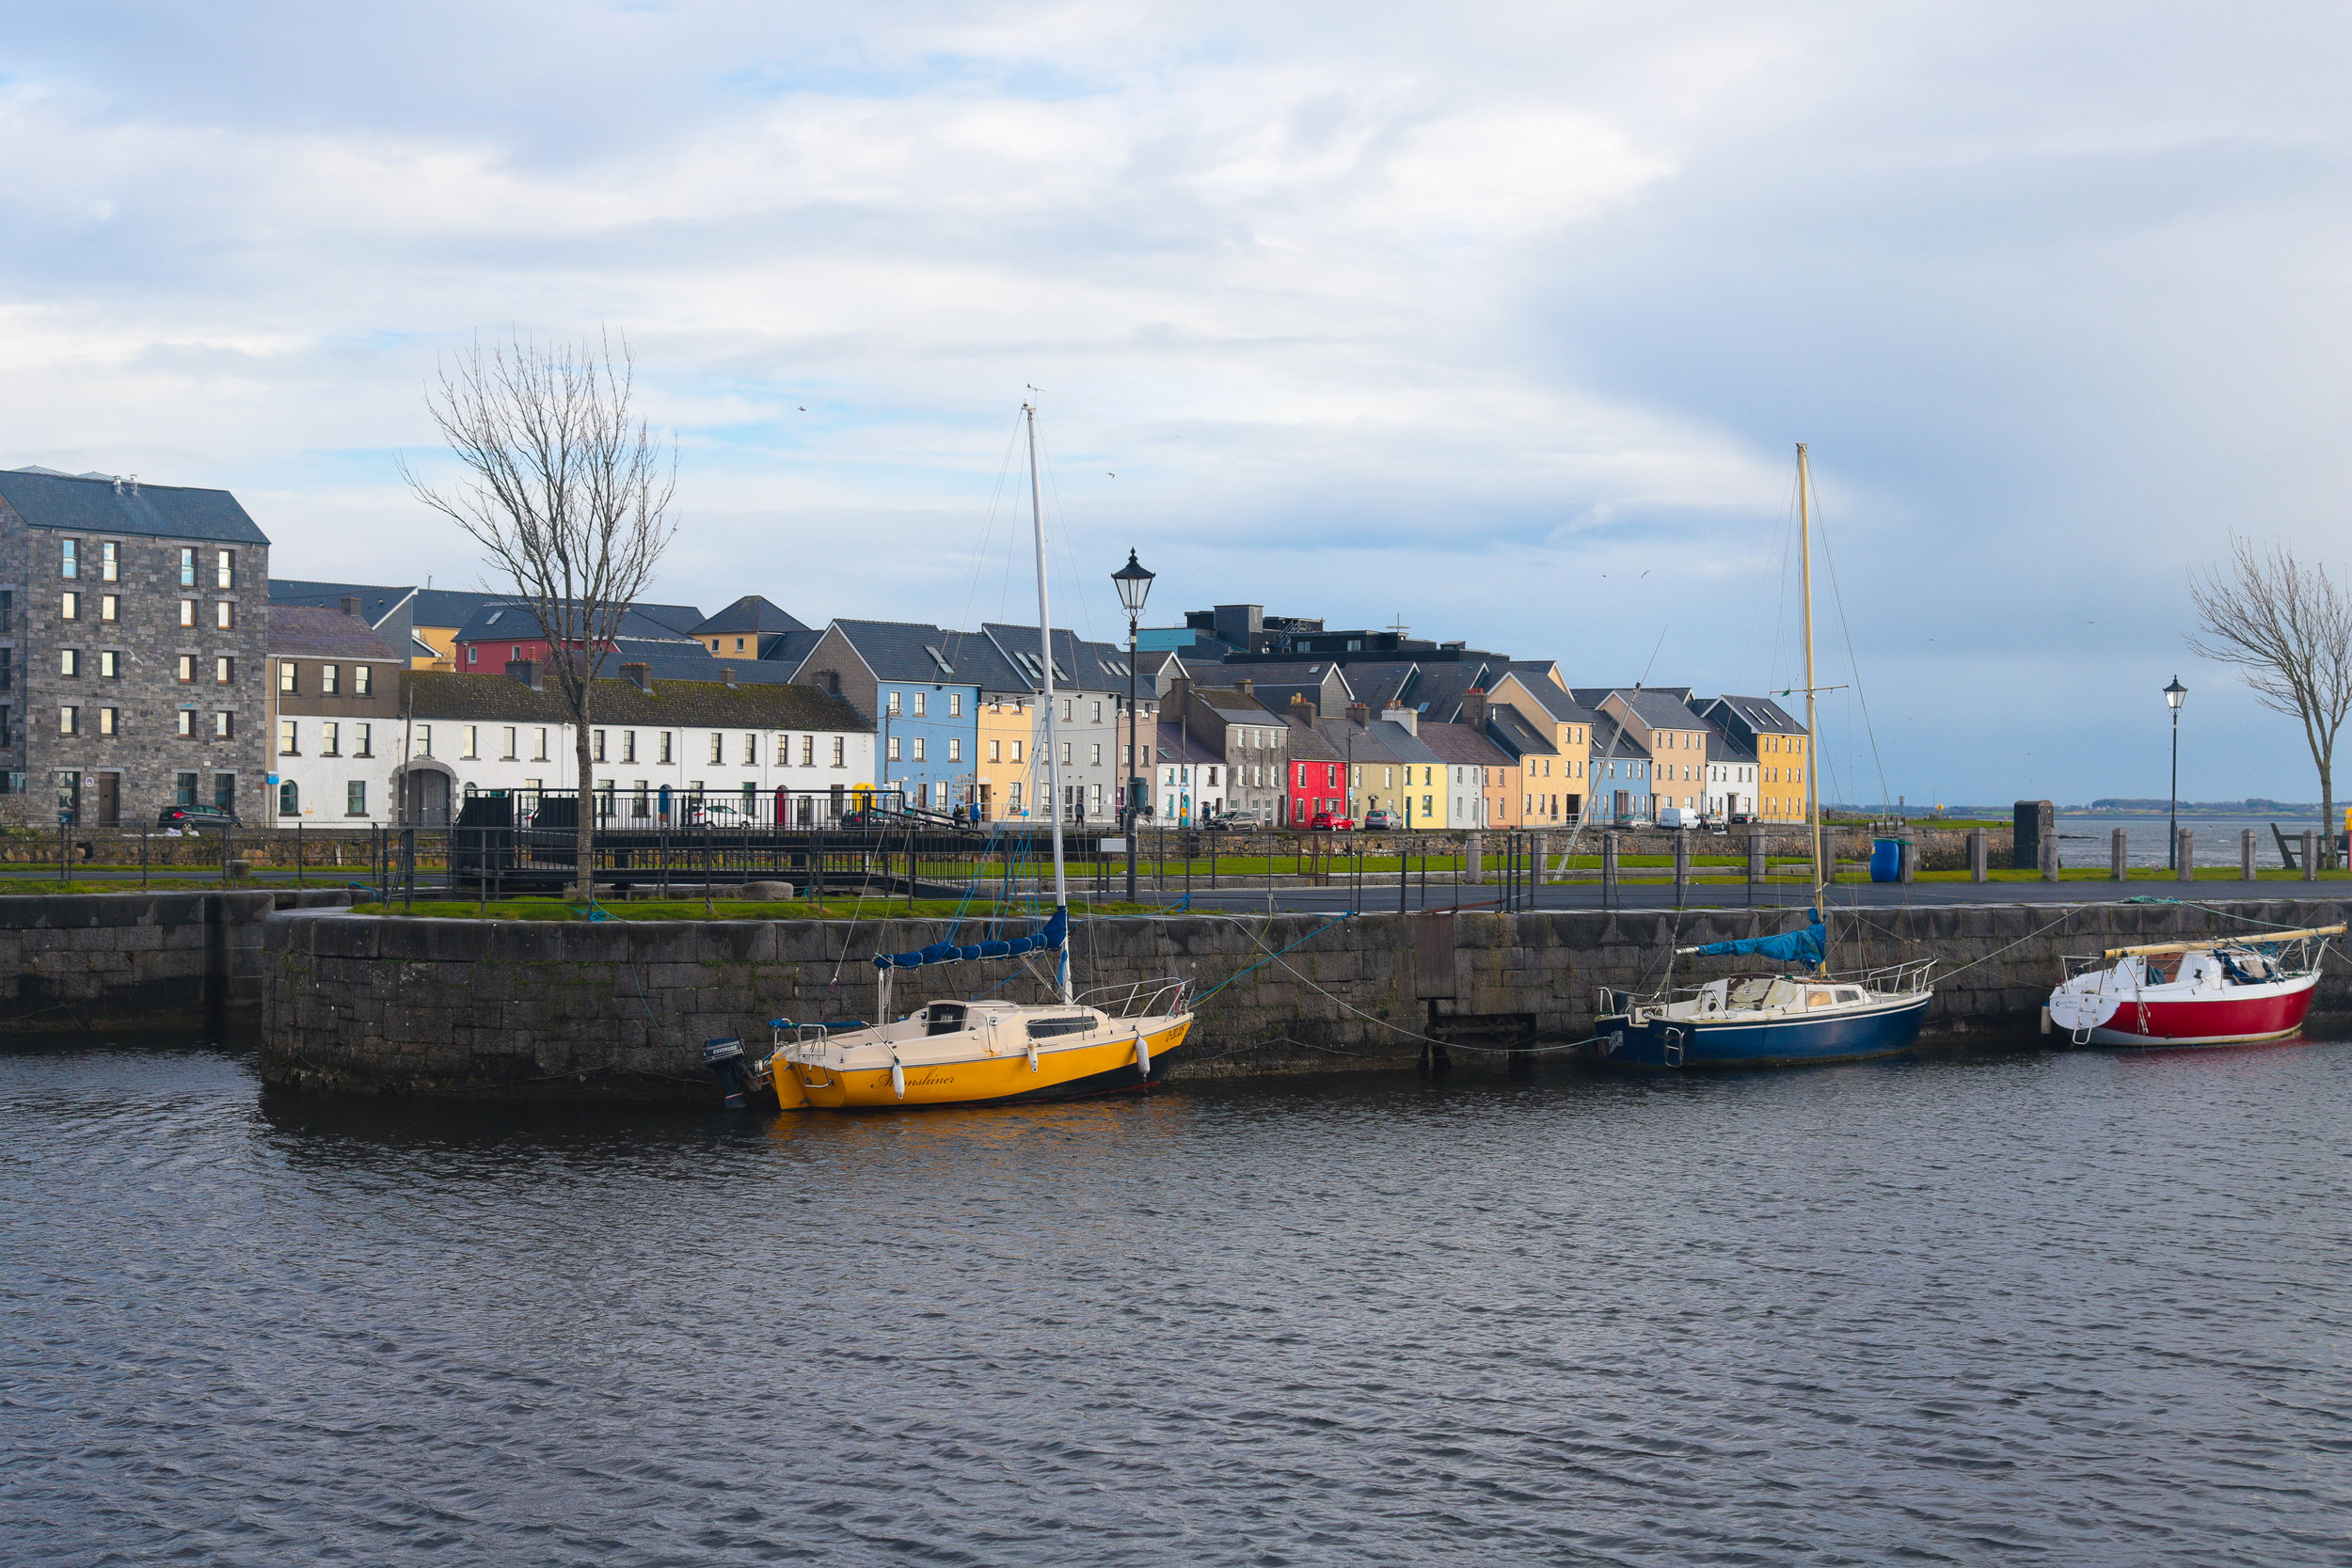 The docks in Galway